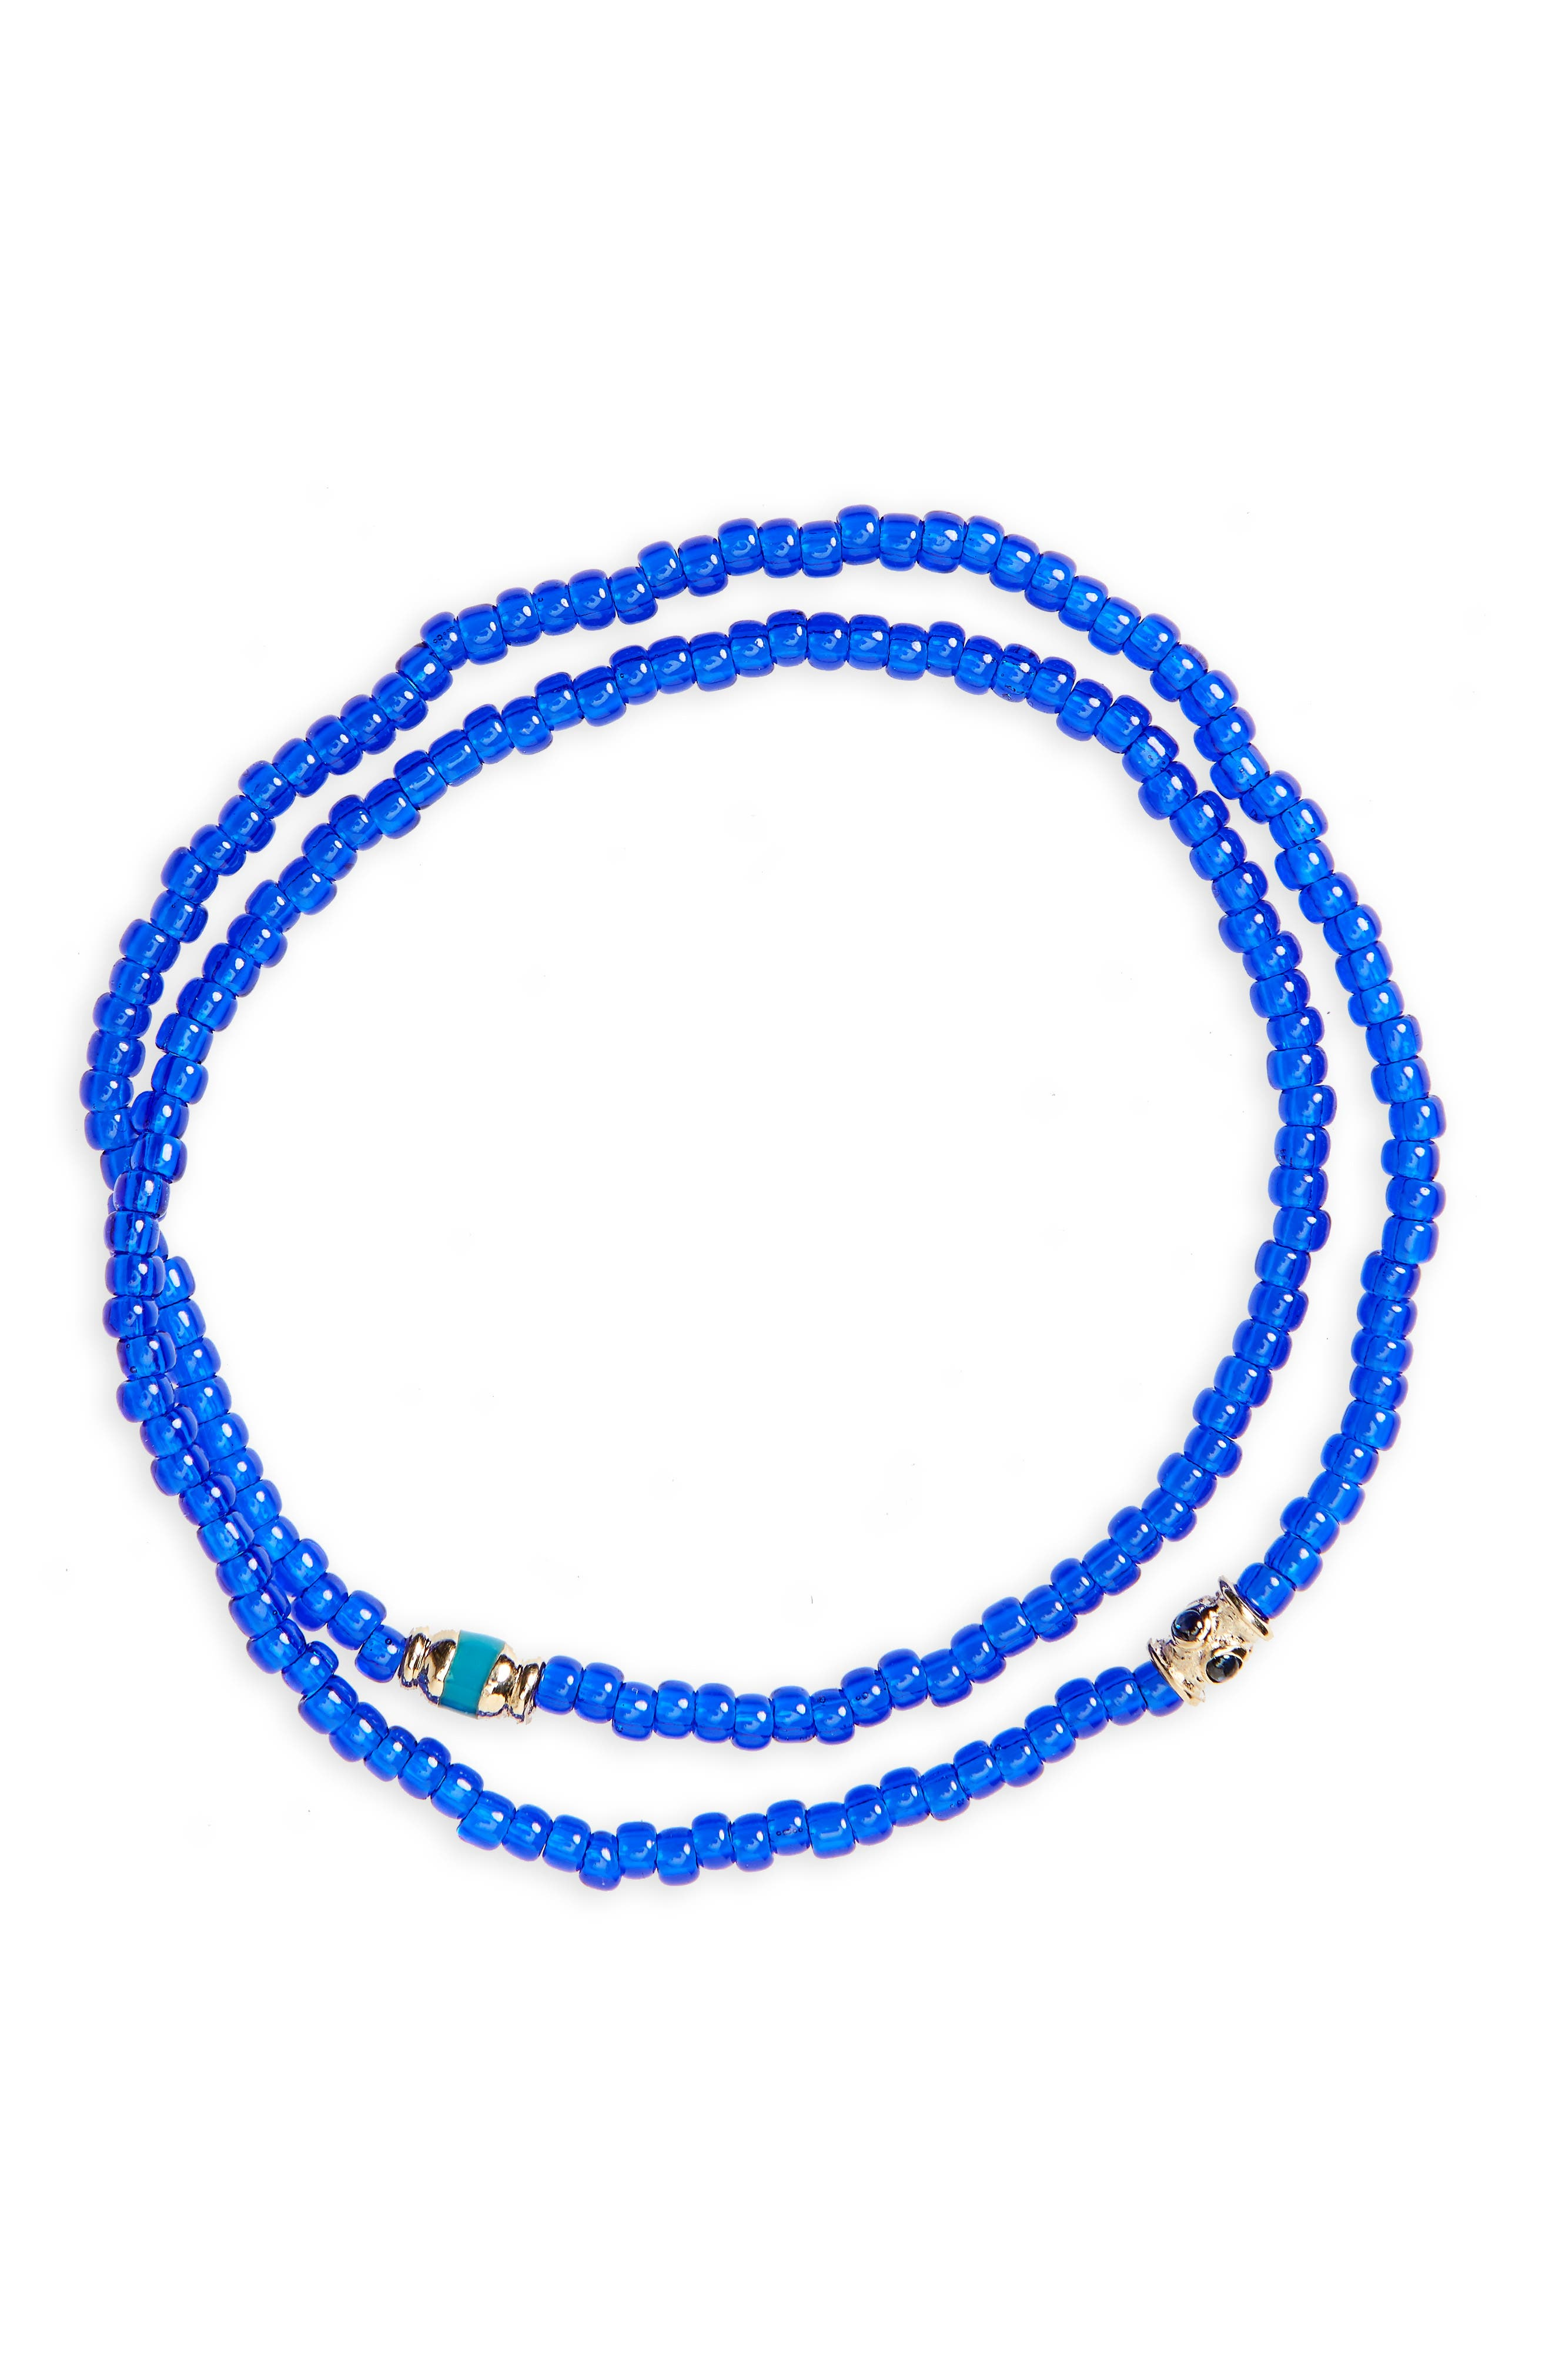 Sapphire and Gold Double Strand Stretch Bracelet,                         Main,                         color, Blue